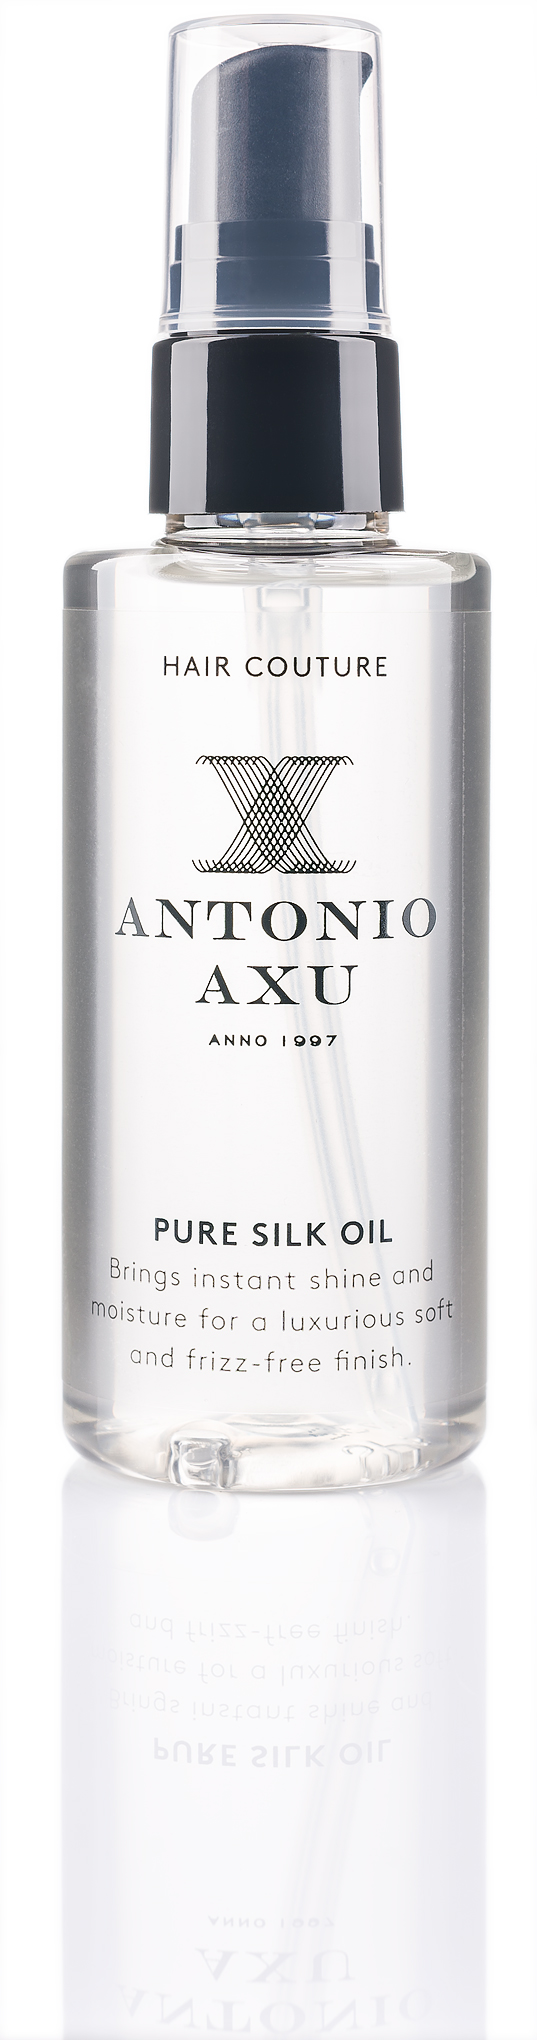 Antonio Axu - Pure Silk Oil 75 ml